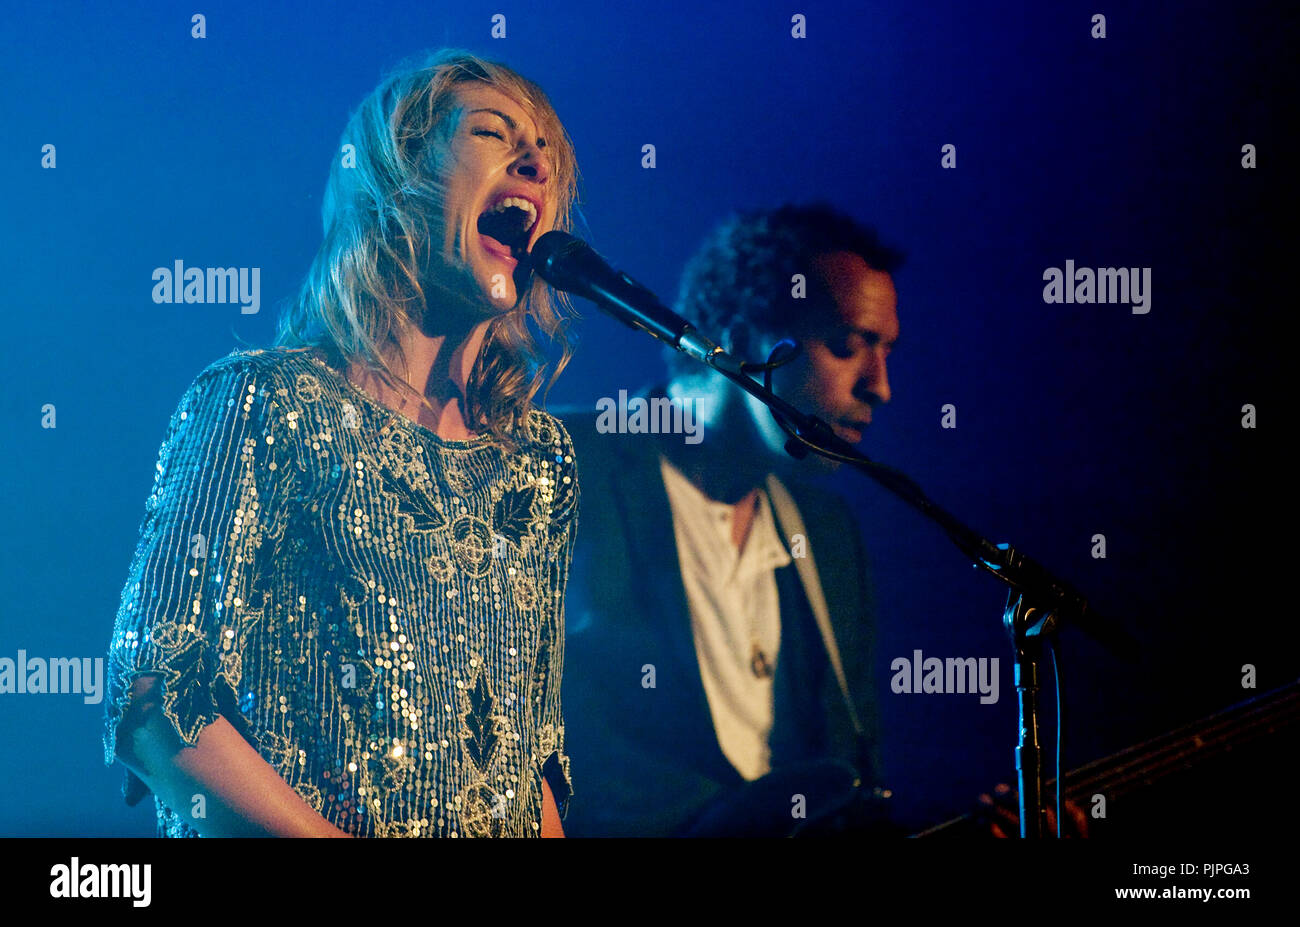 Canadian New Wave/indie rock band Metric performing at the Nuits du Botanique festival in Brussels (Belgium, 08/05/2009) - Stock Image